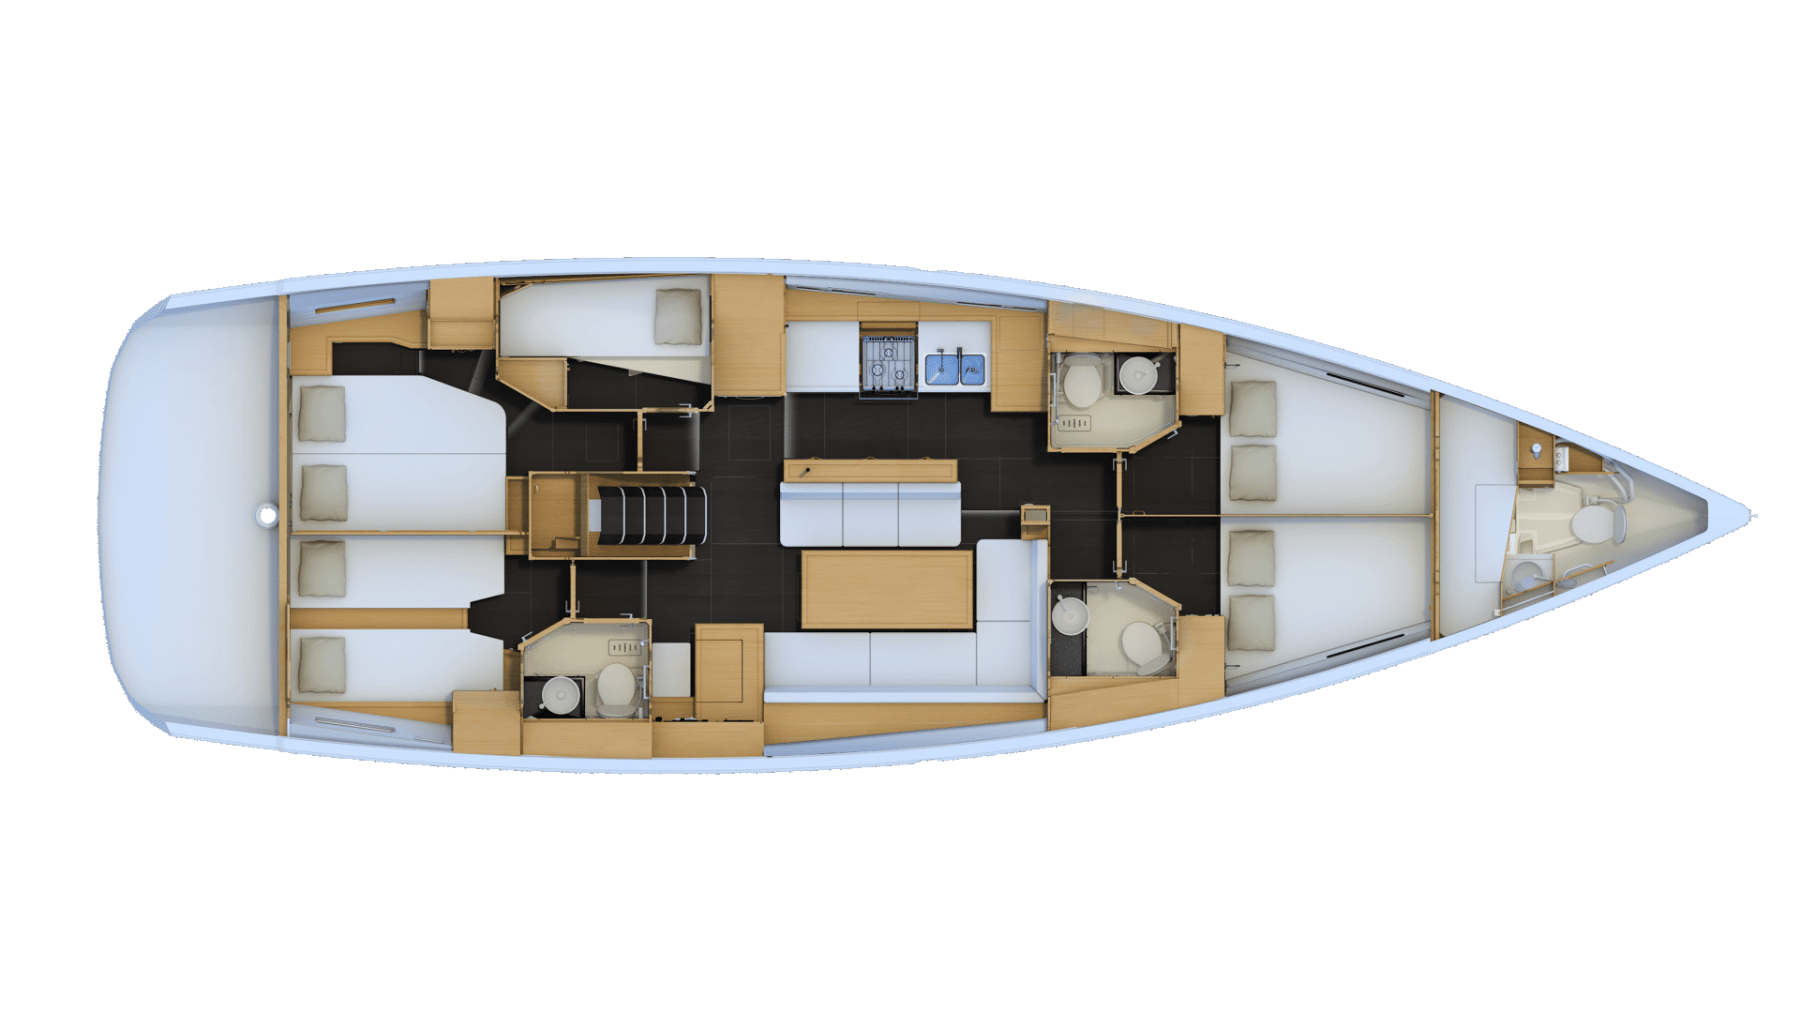 Jeanneau-54-layout-4-charter-ownership-yacht.